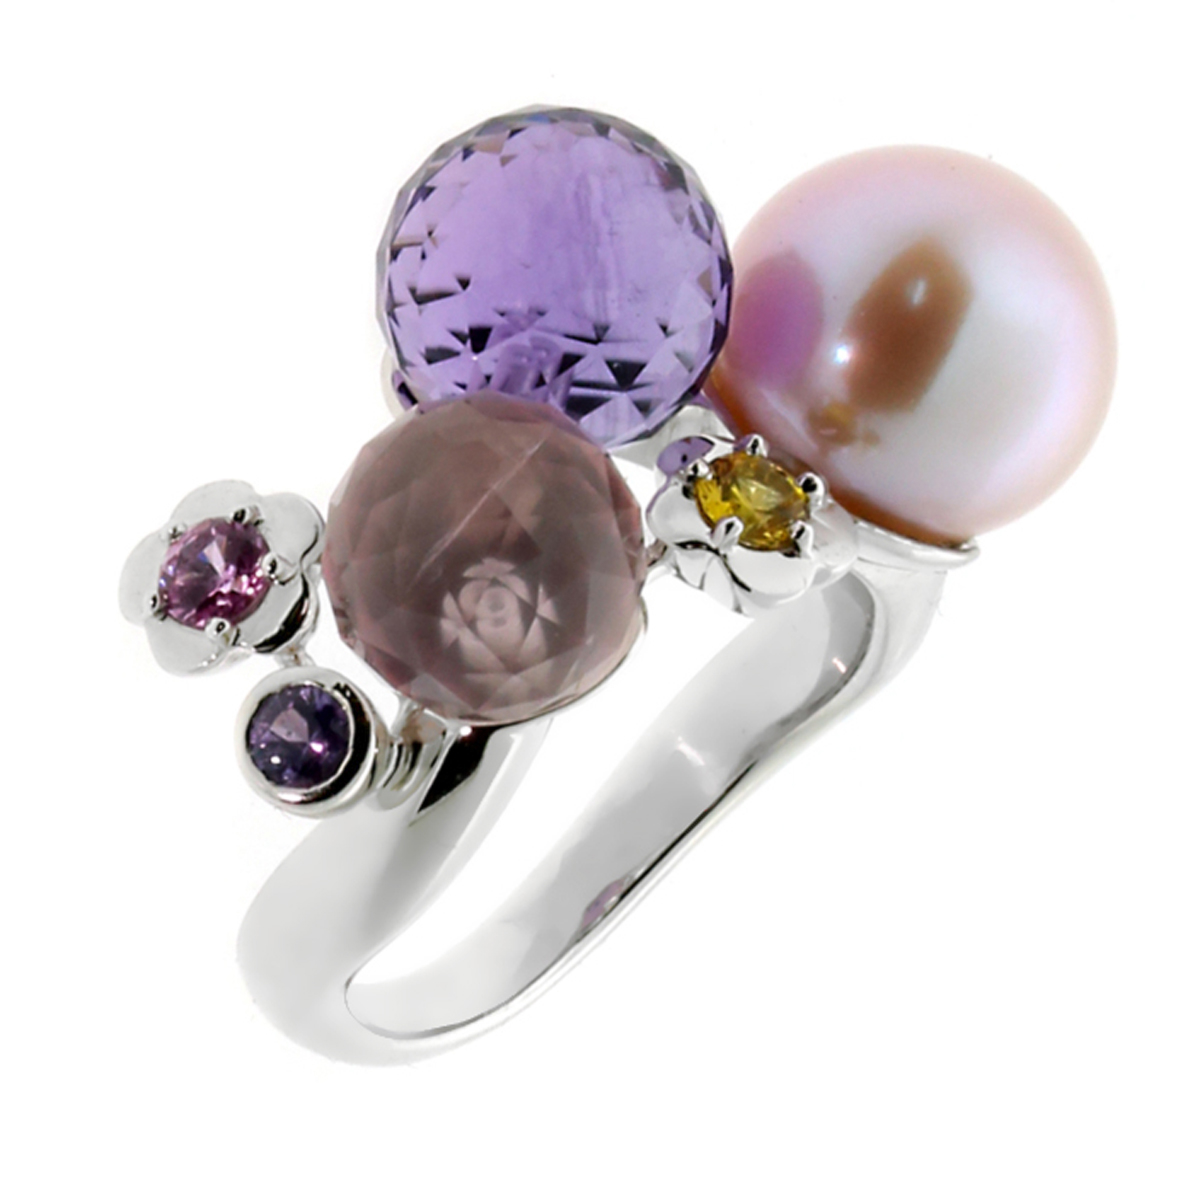 Chanel Camellia Gemstone Pearl White Gold Ring - Chanel Jewelry